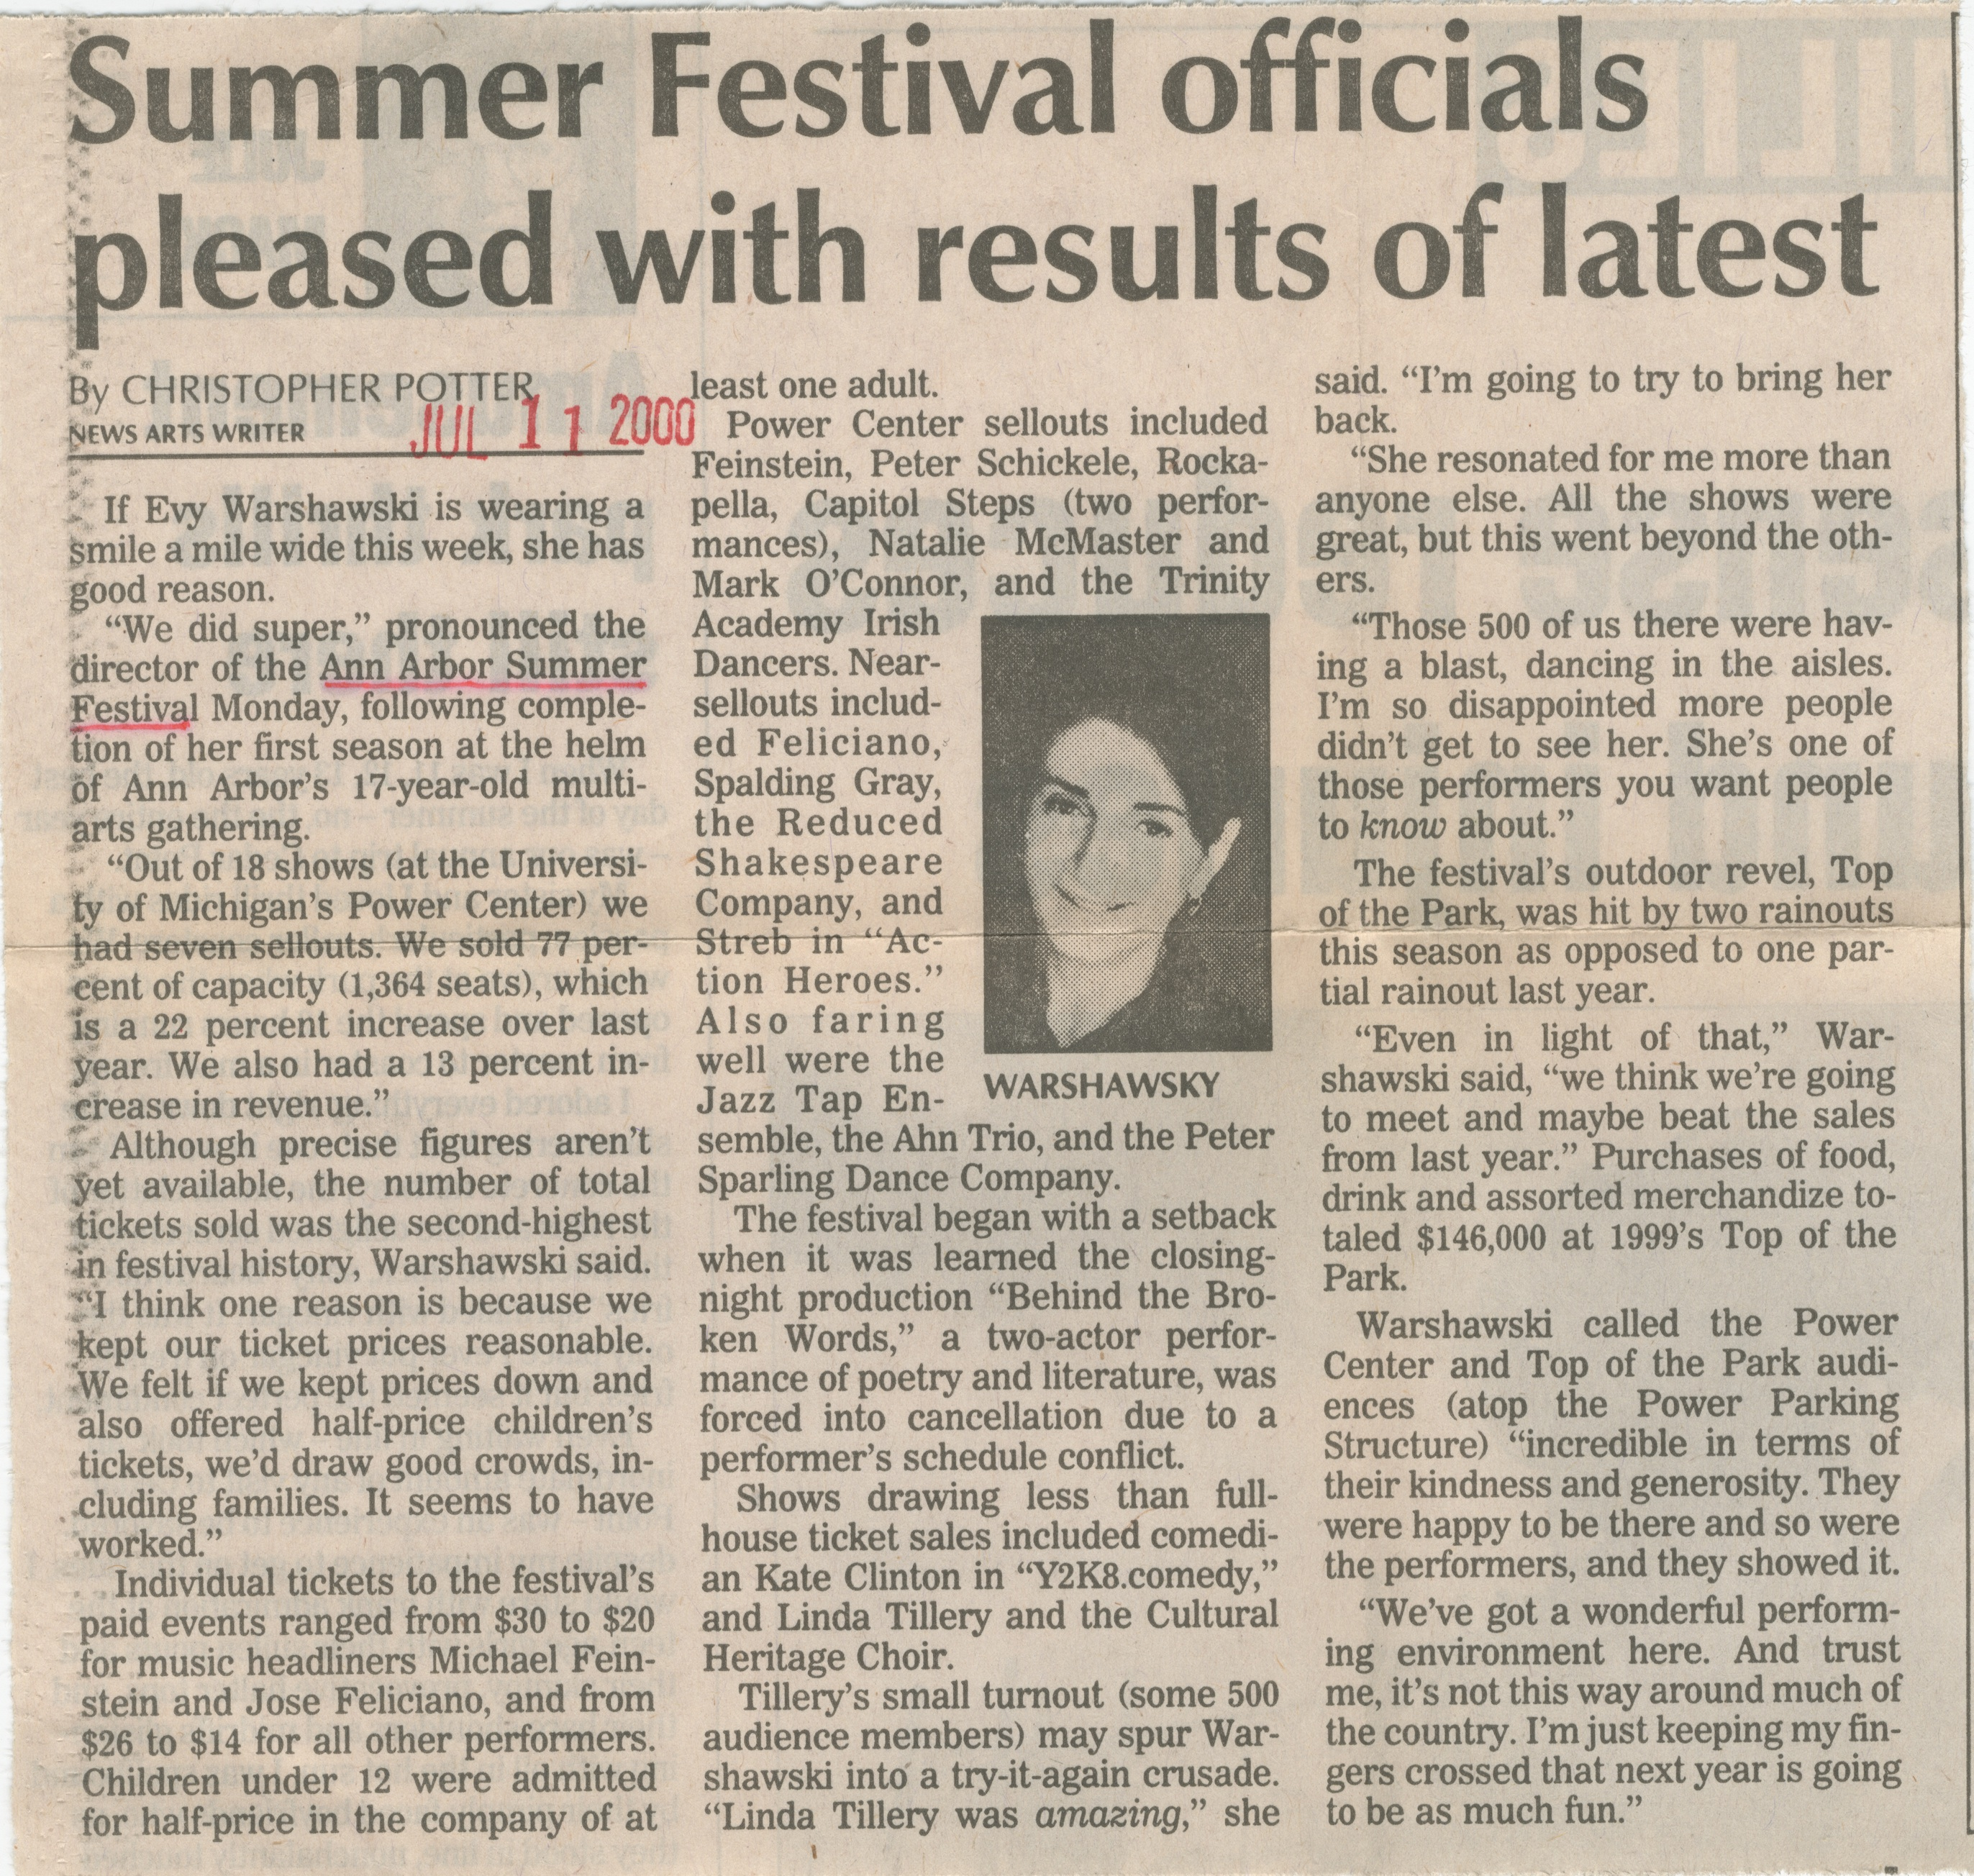 Summer Festival officials pleased with results of latest image